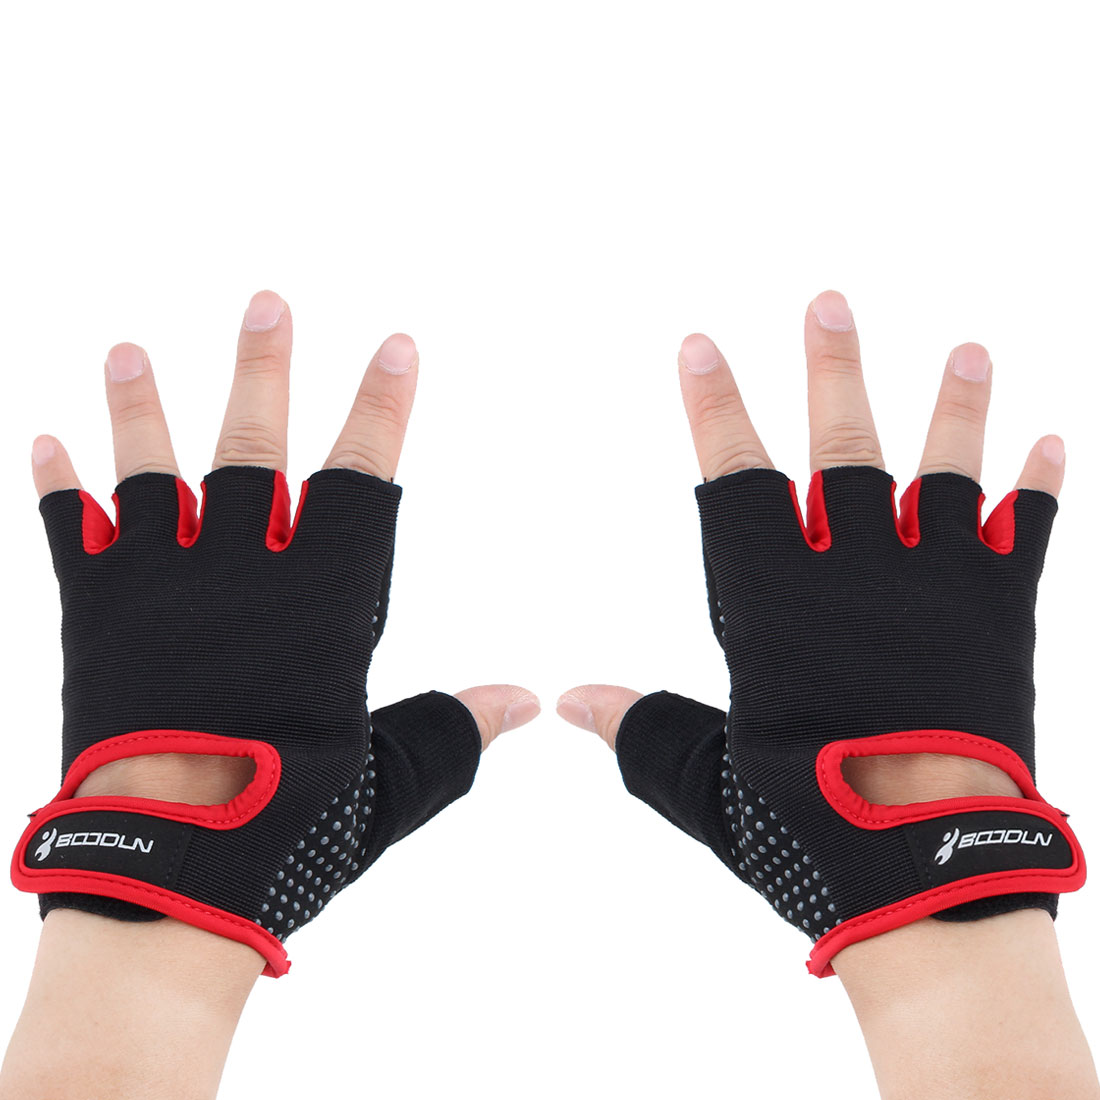 BOODUN Authorized Gym Workout Weight Lifting Training Adjustable Anti Slip Breathable Fitness Half Finger Gloves Red L Size Pair